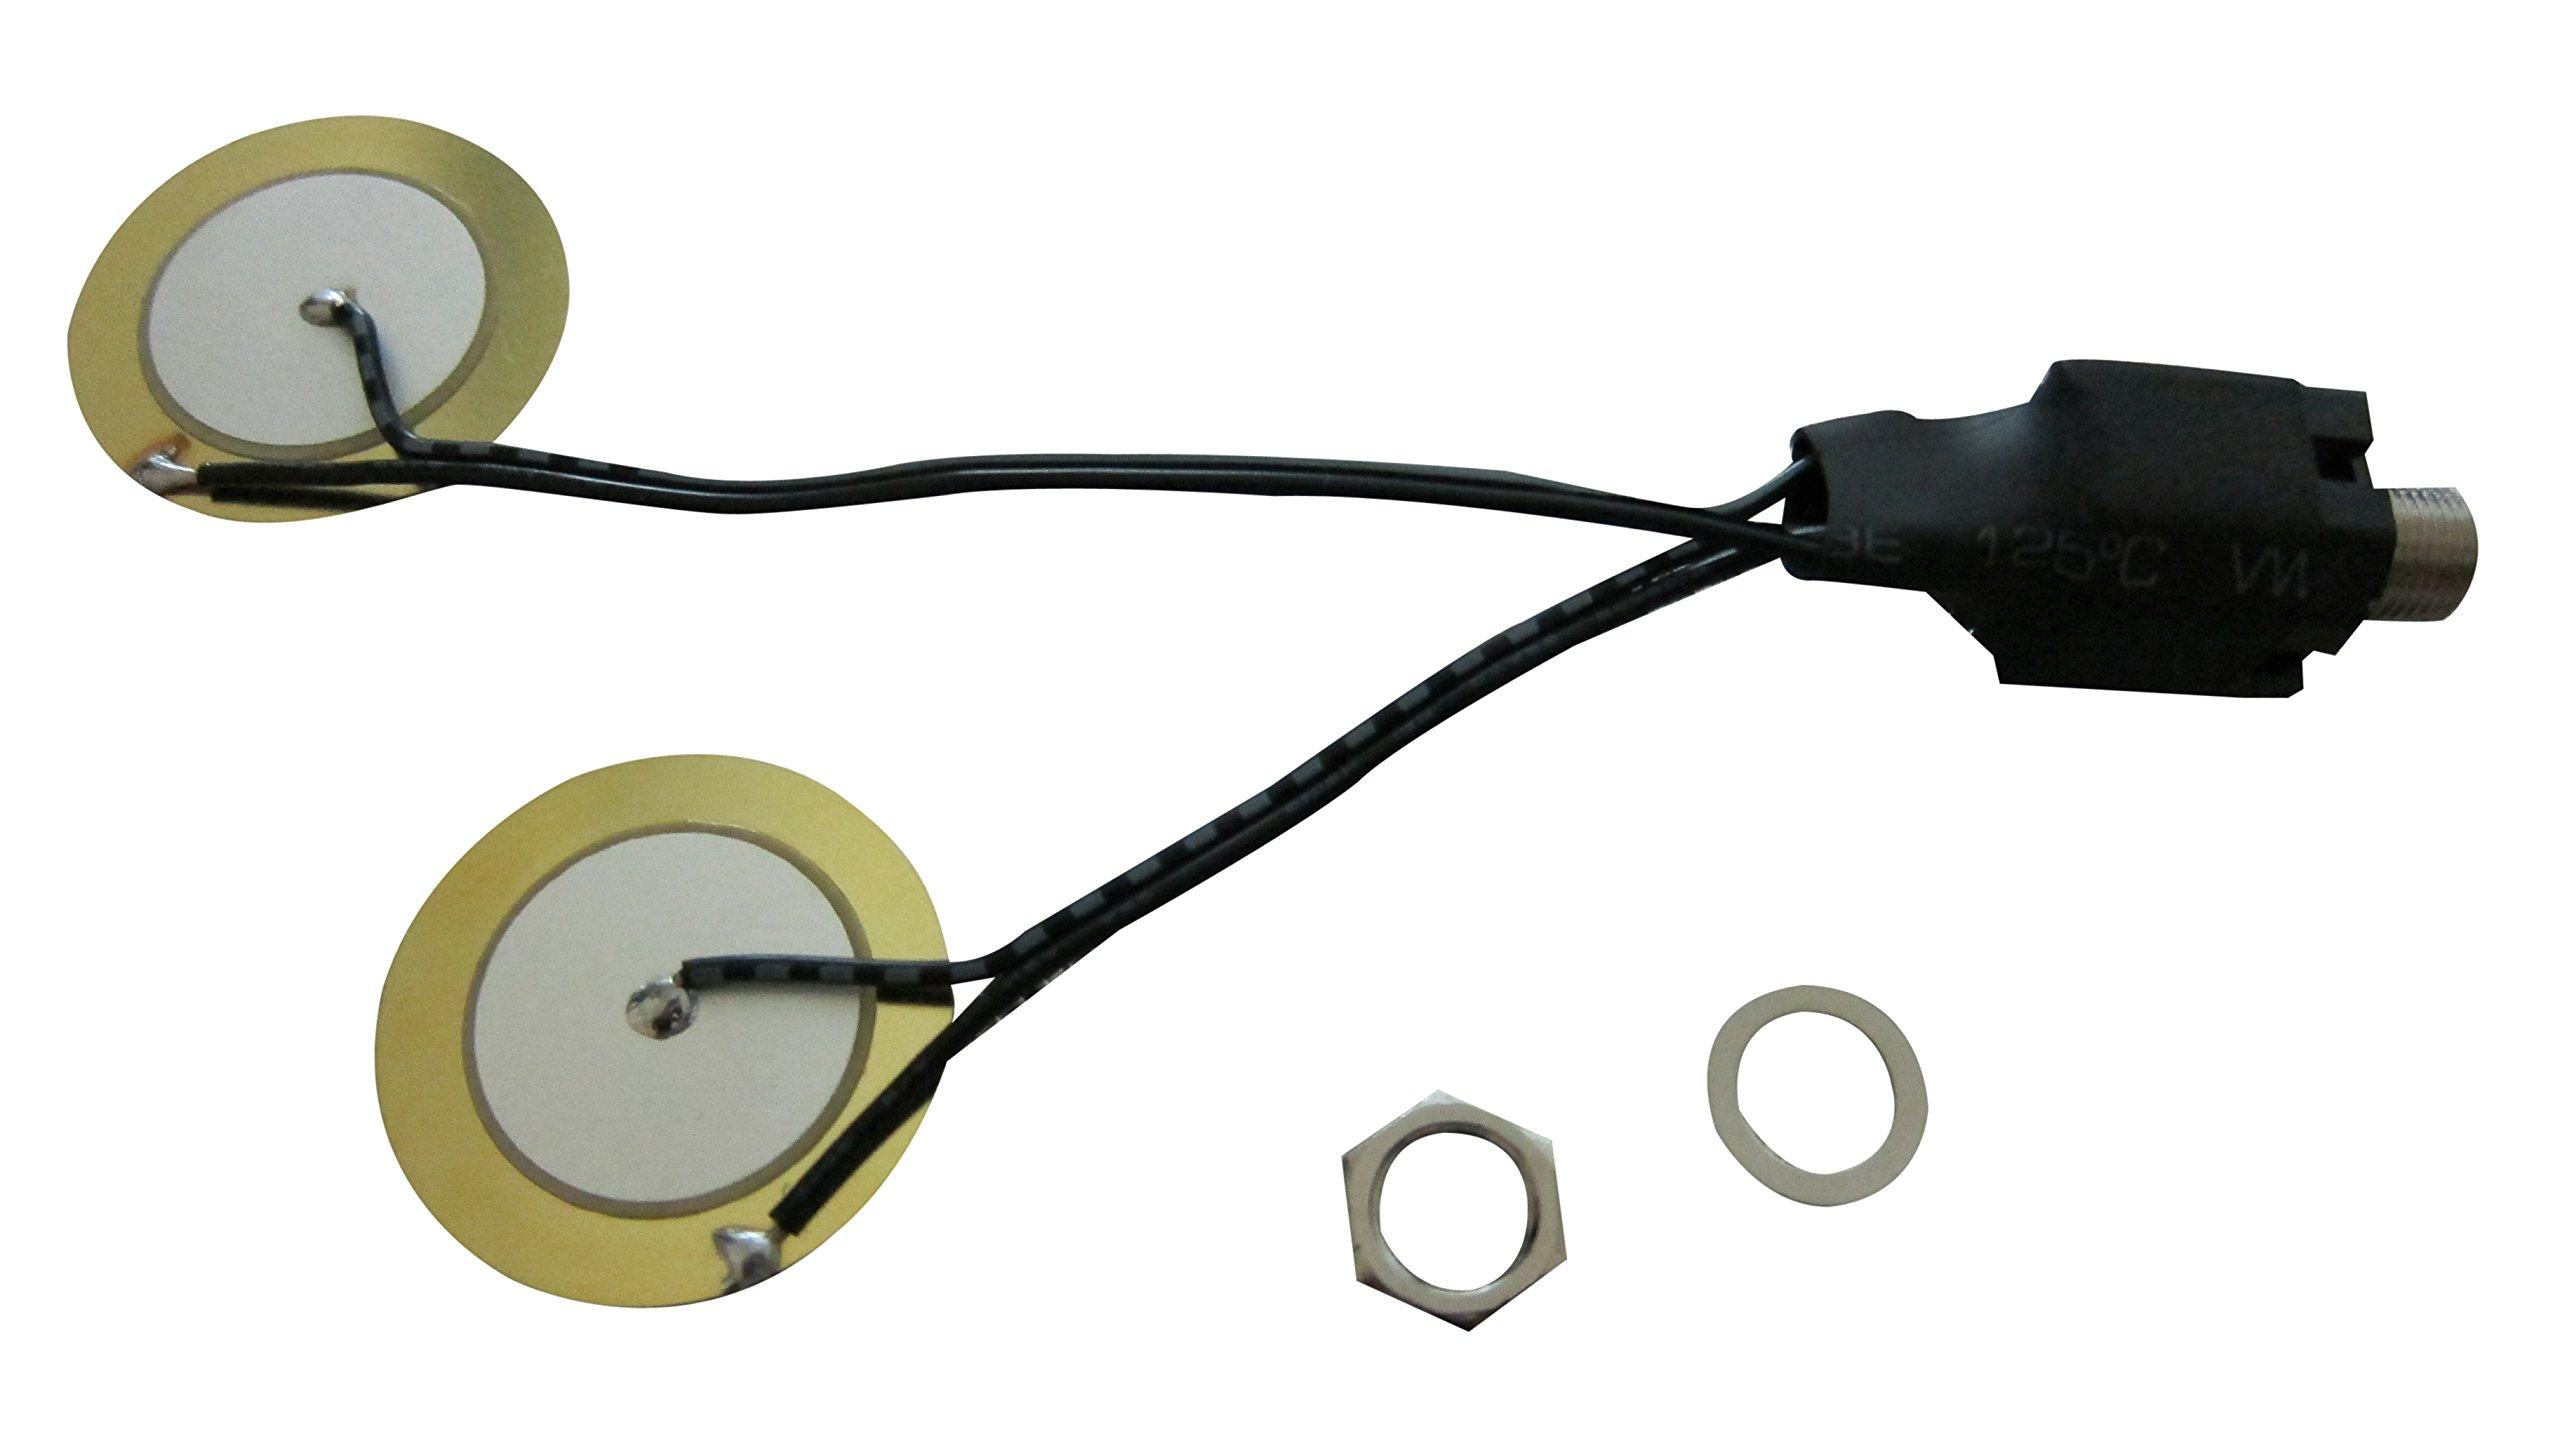 Goedrum Drum trigger for DIY Electronic Drum